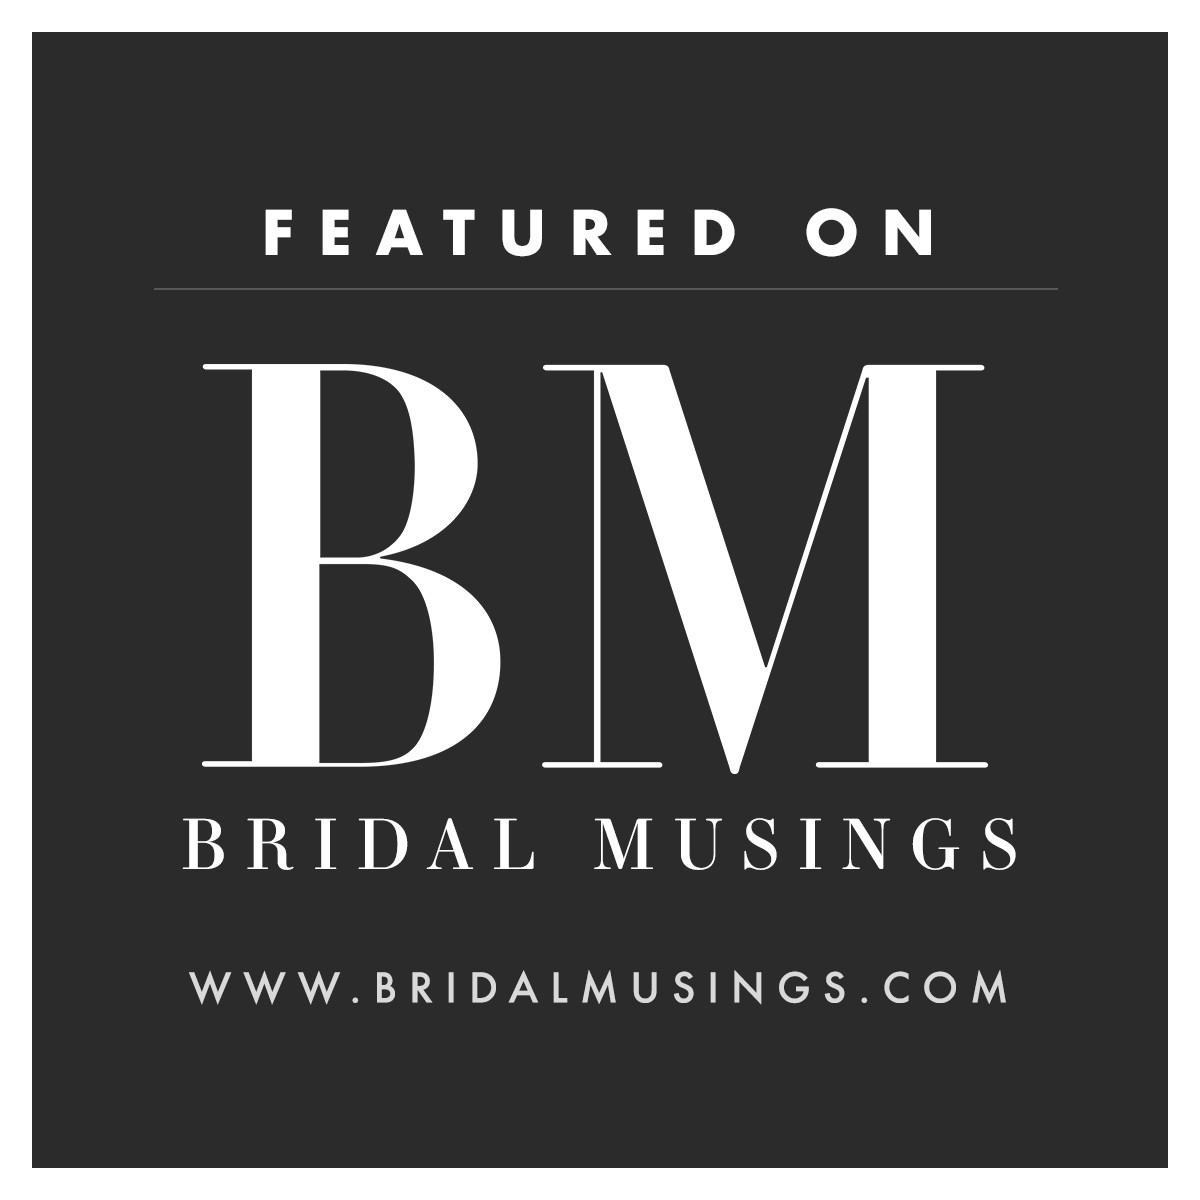 bridal musings featured